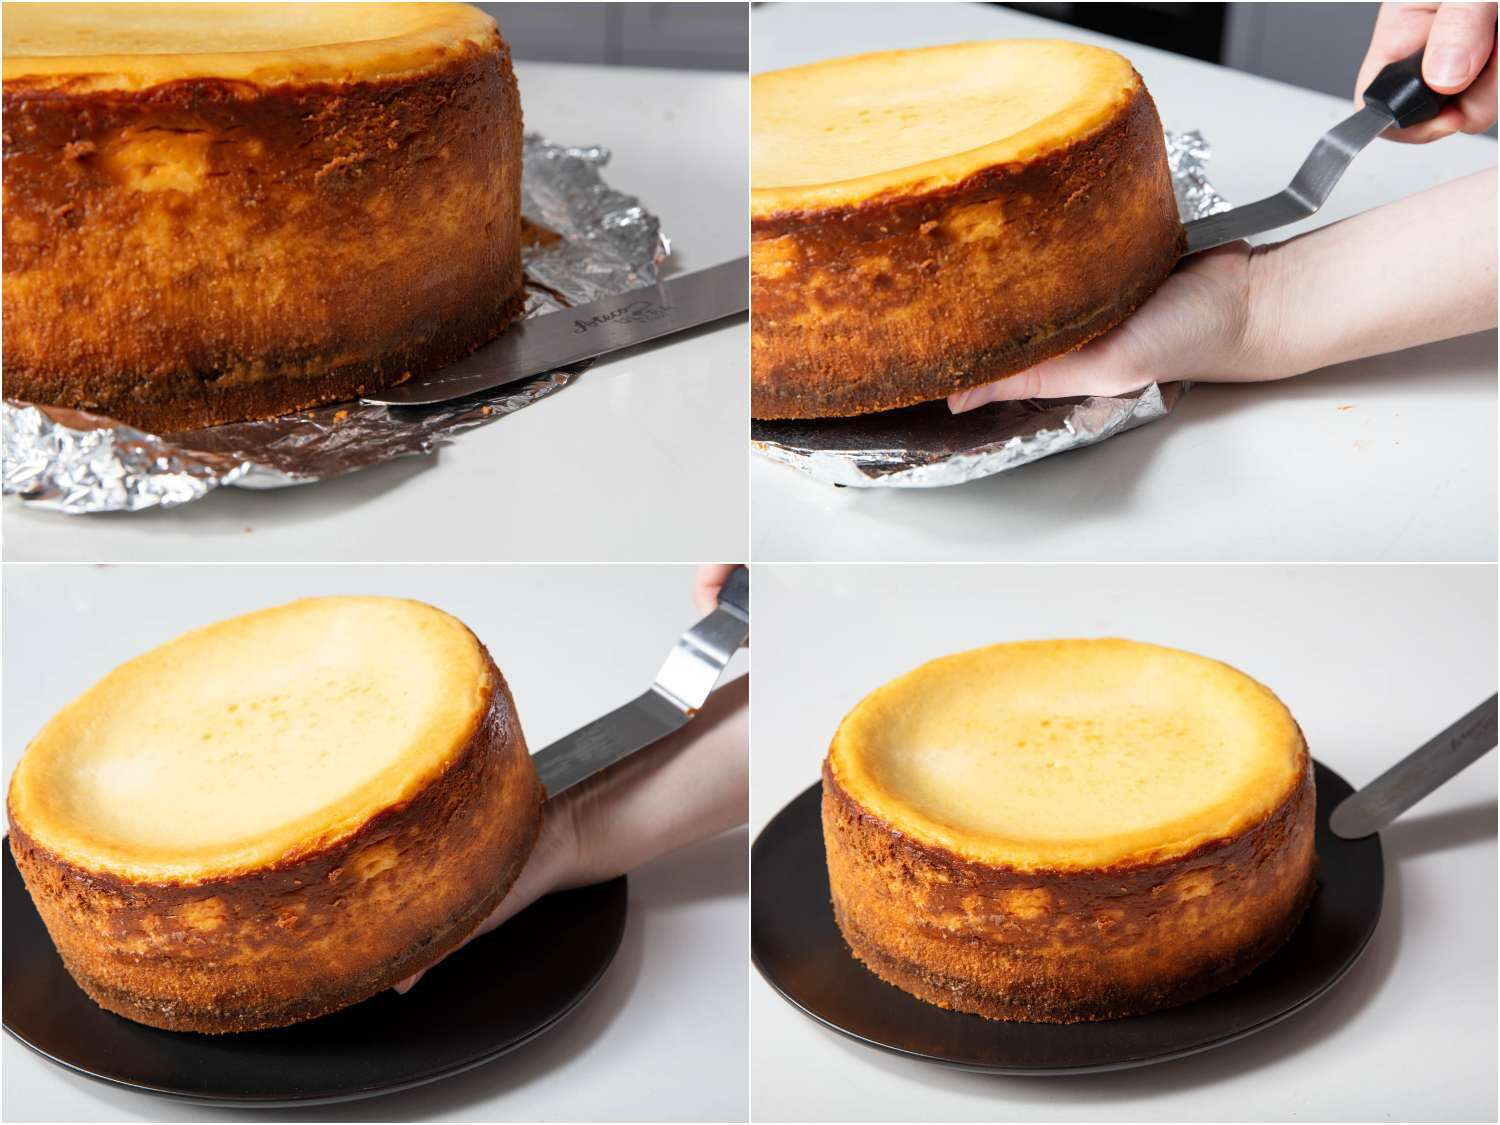 removing the baked cheesecake from the loose bottom of the pan